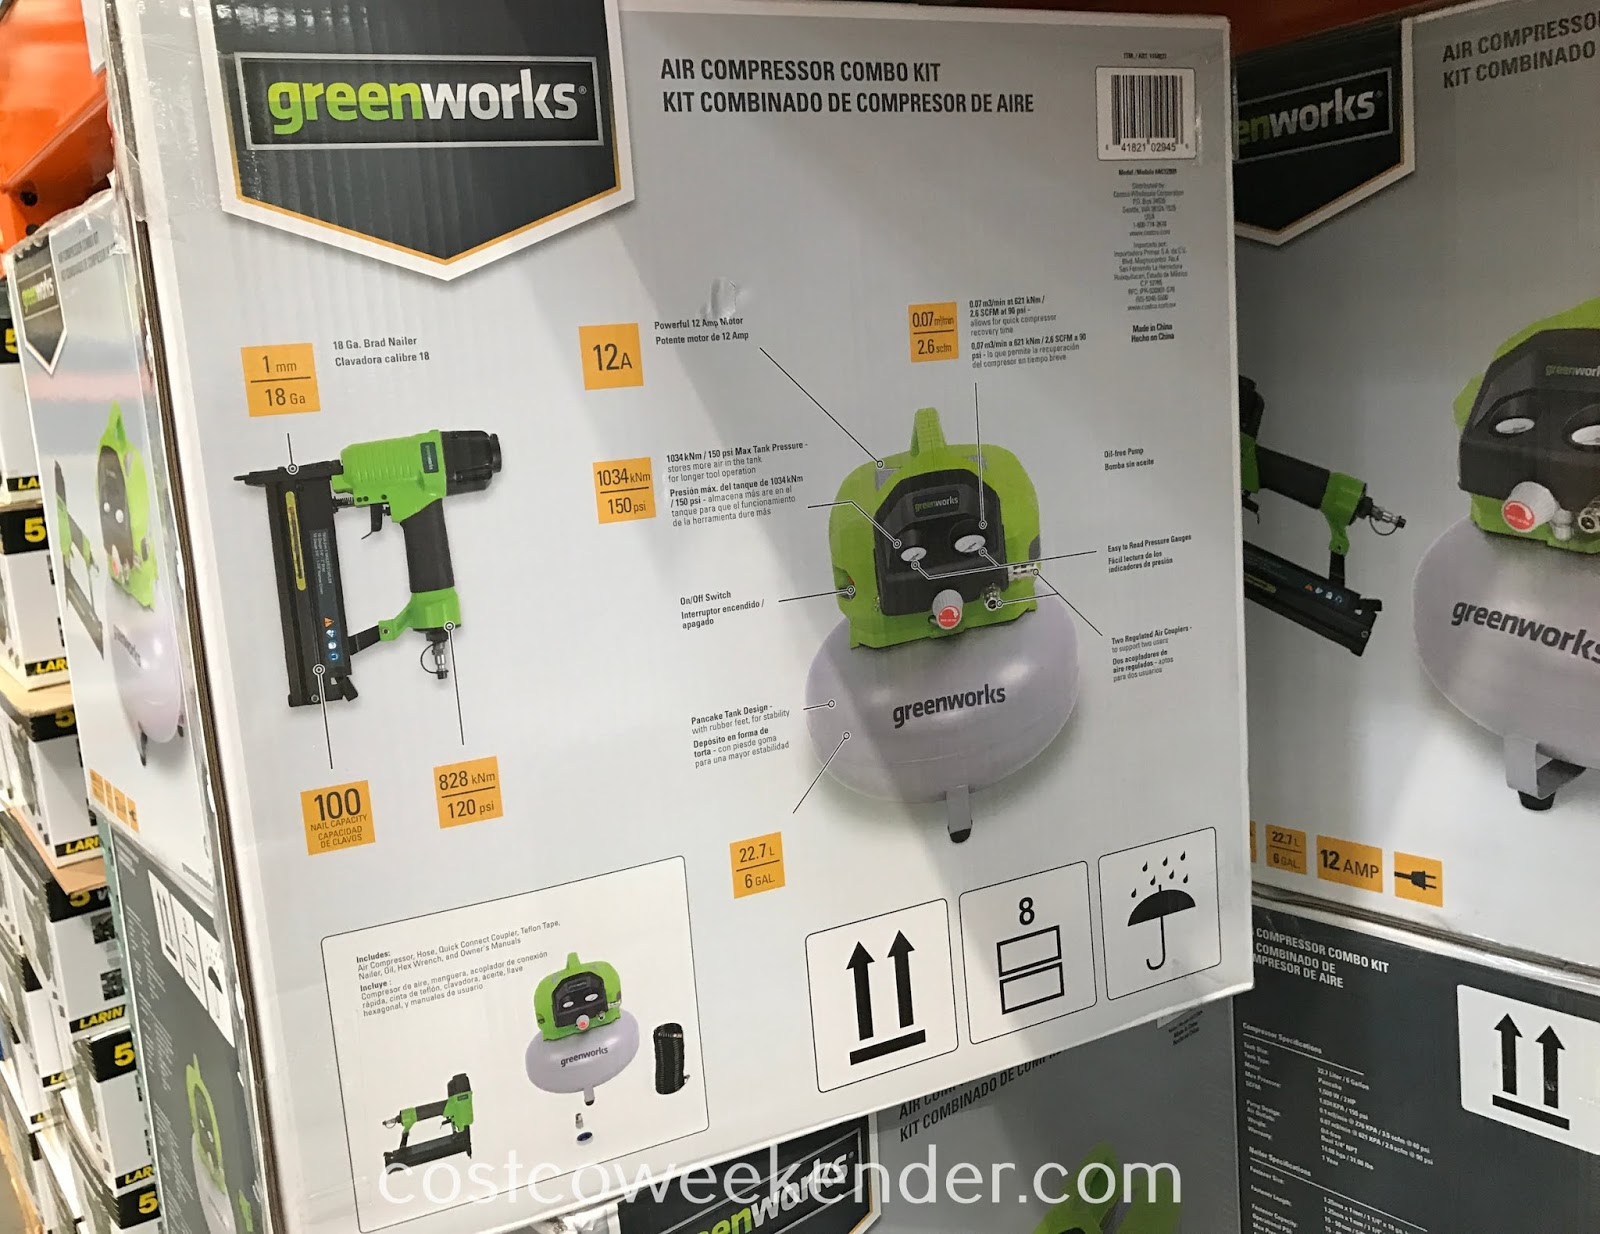 Greenworks 6-gallon Air Compressor Combo Kit features both air compressor and brad nailer